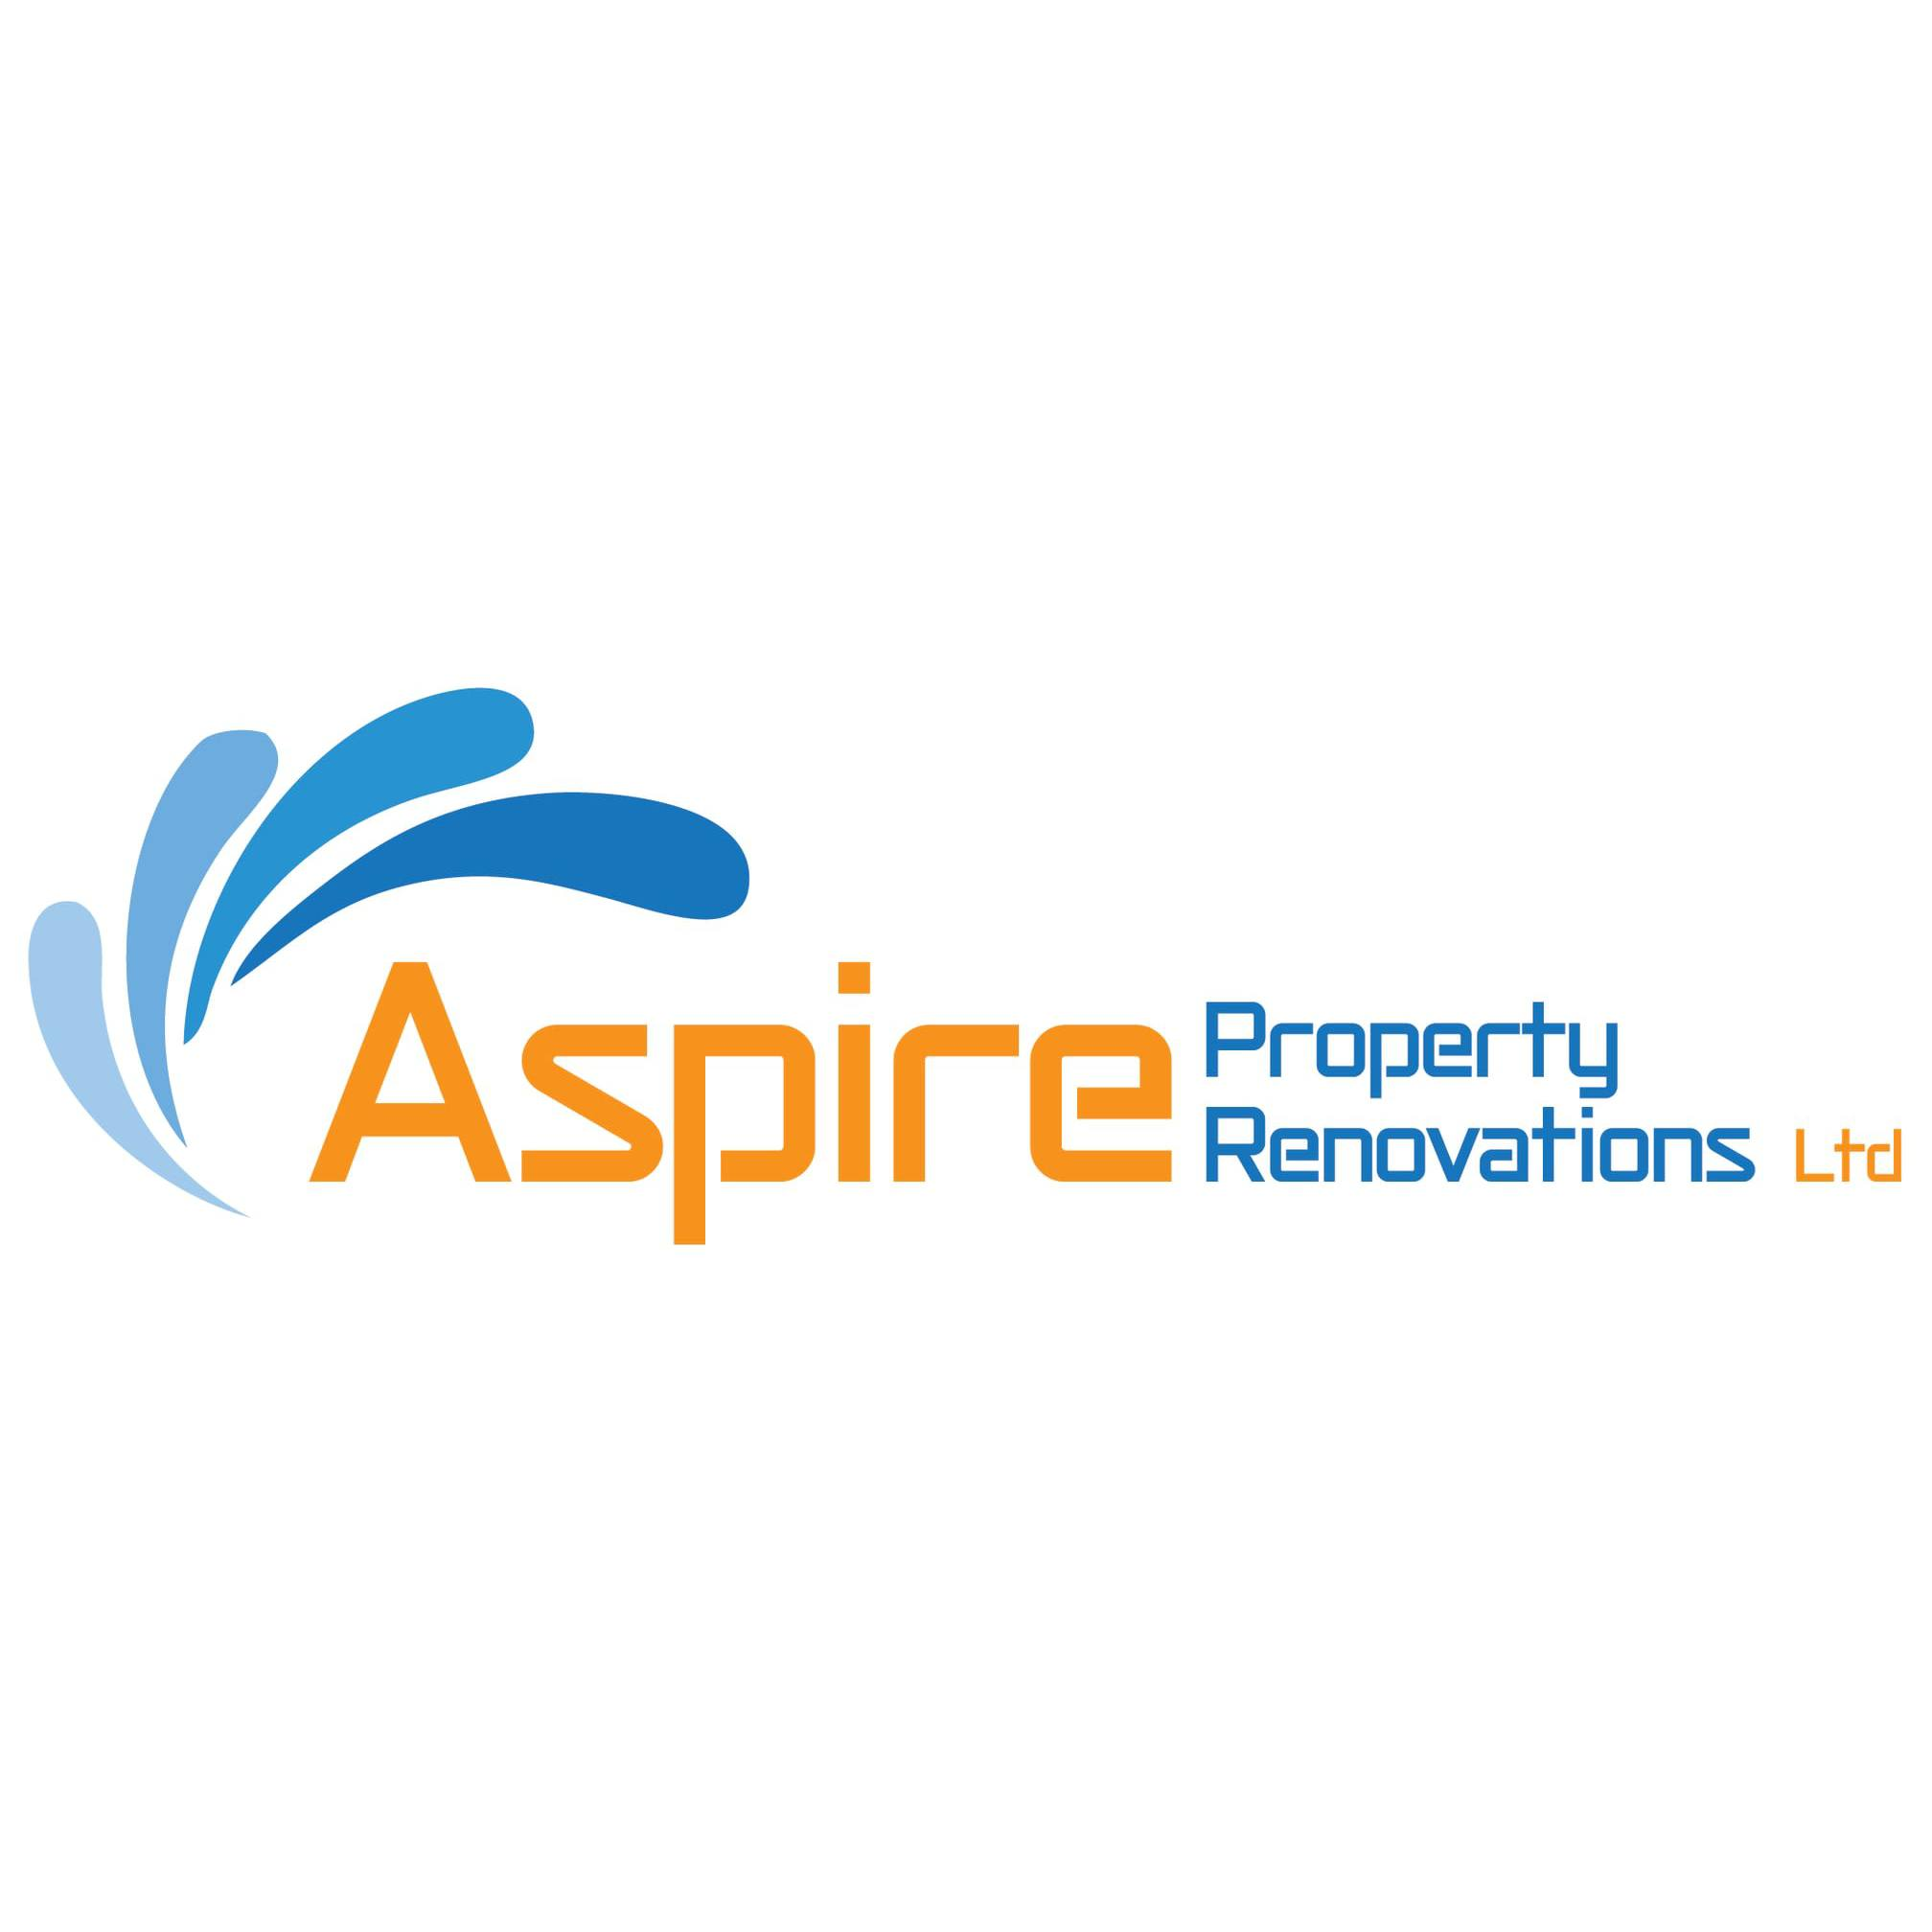 Aspire Property Renovations Ltd